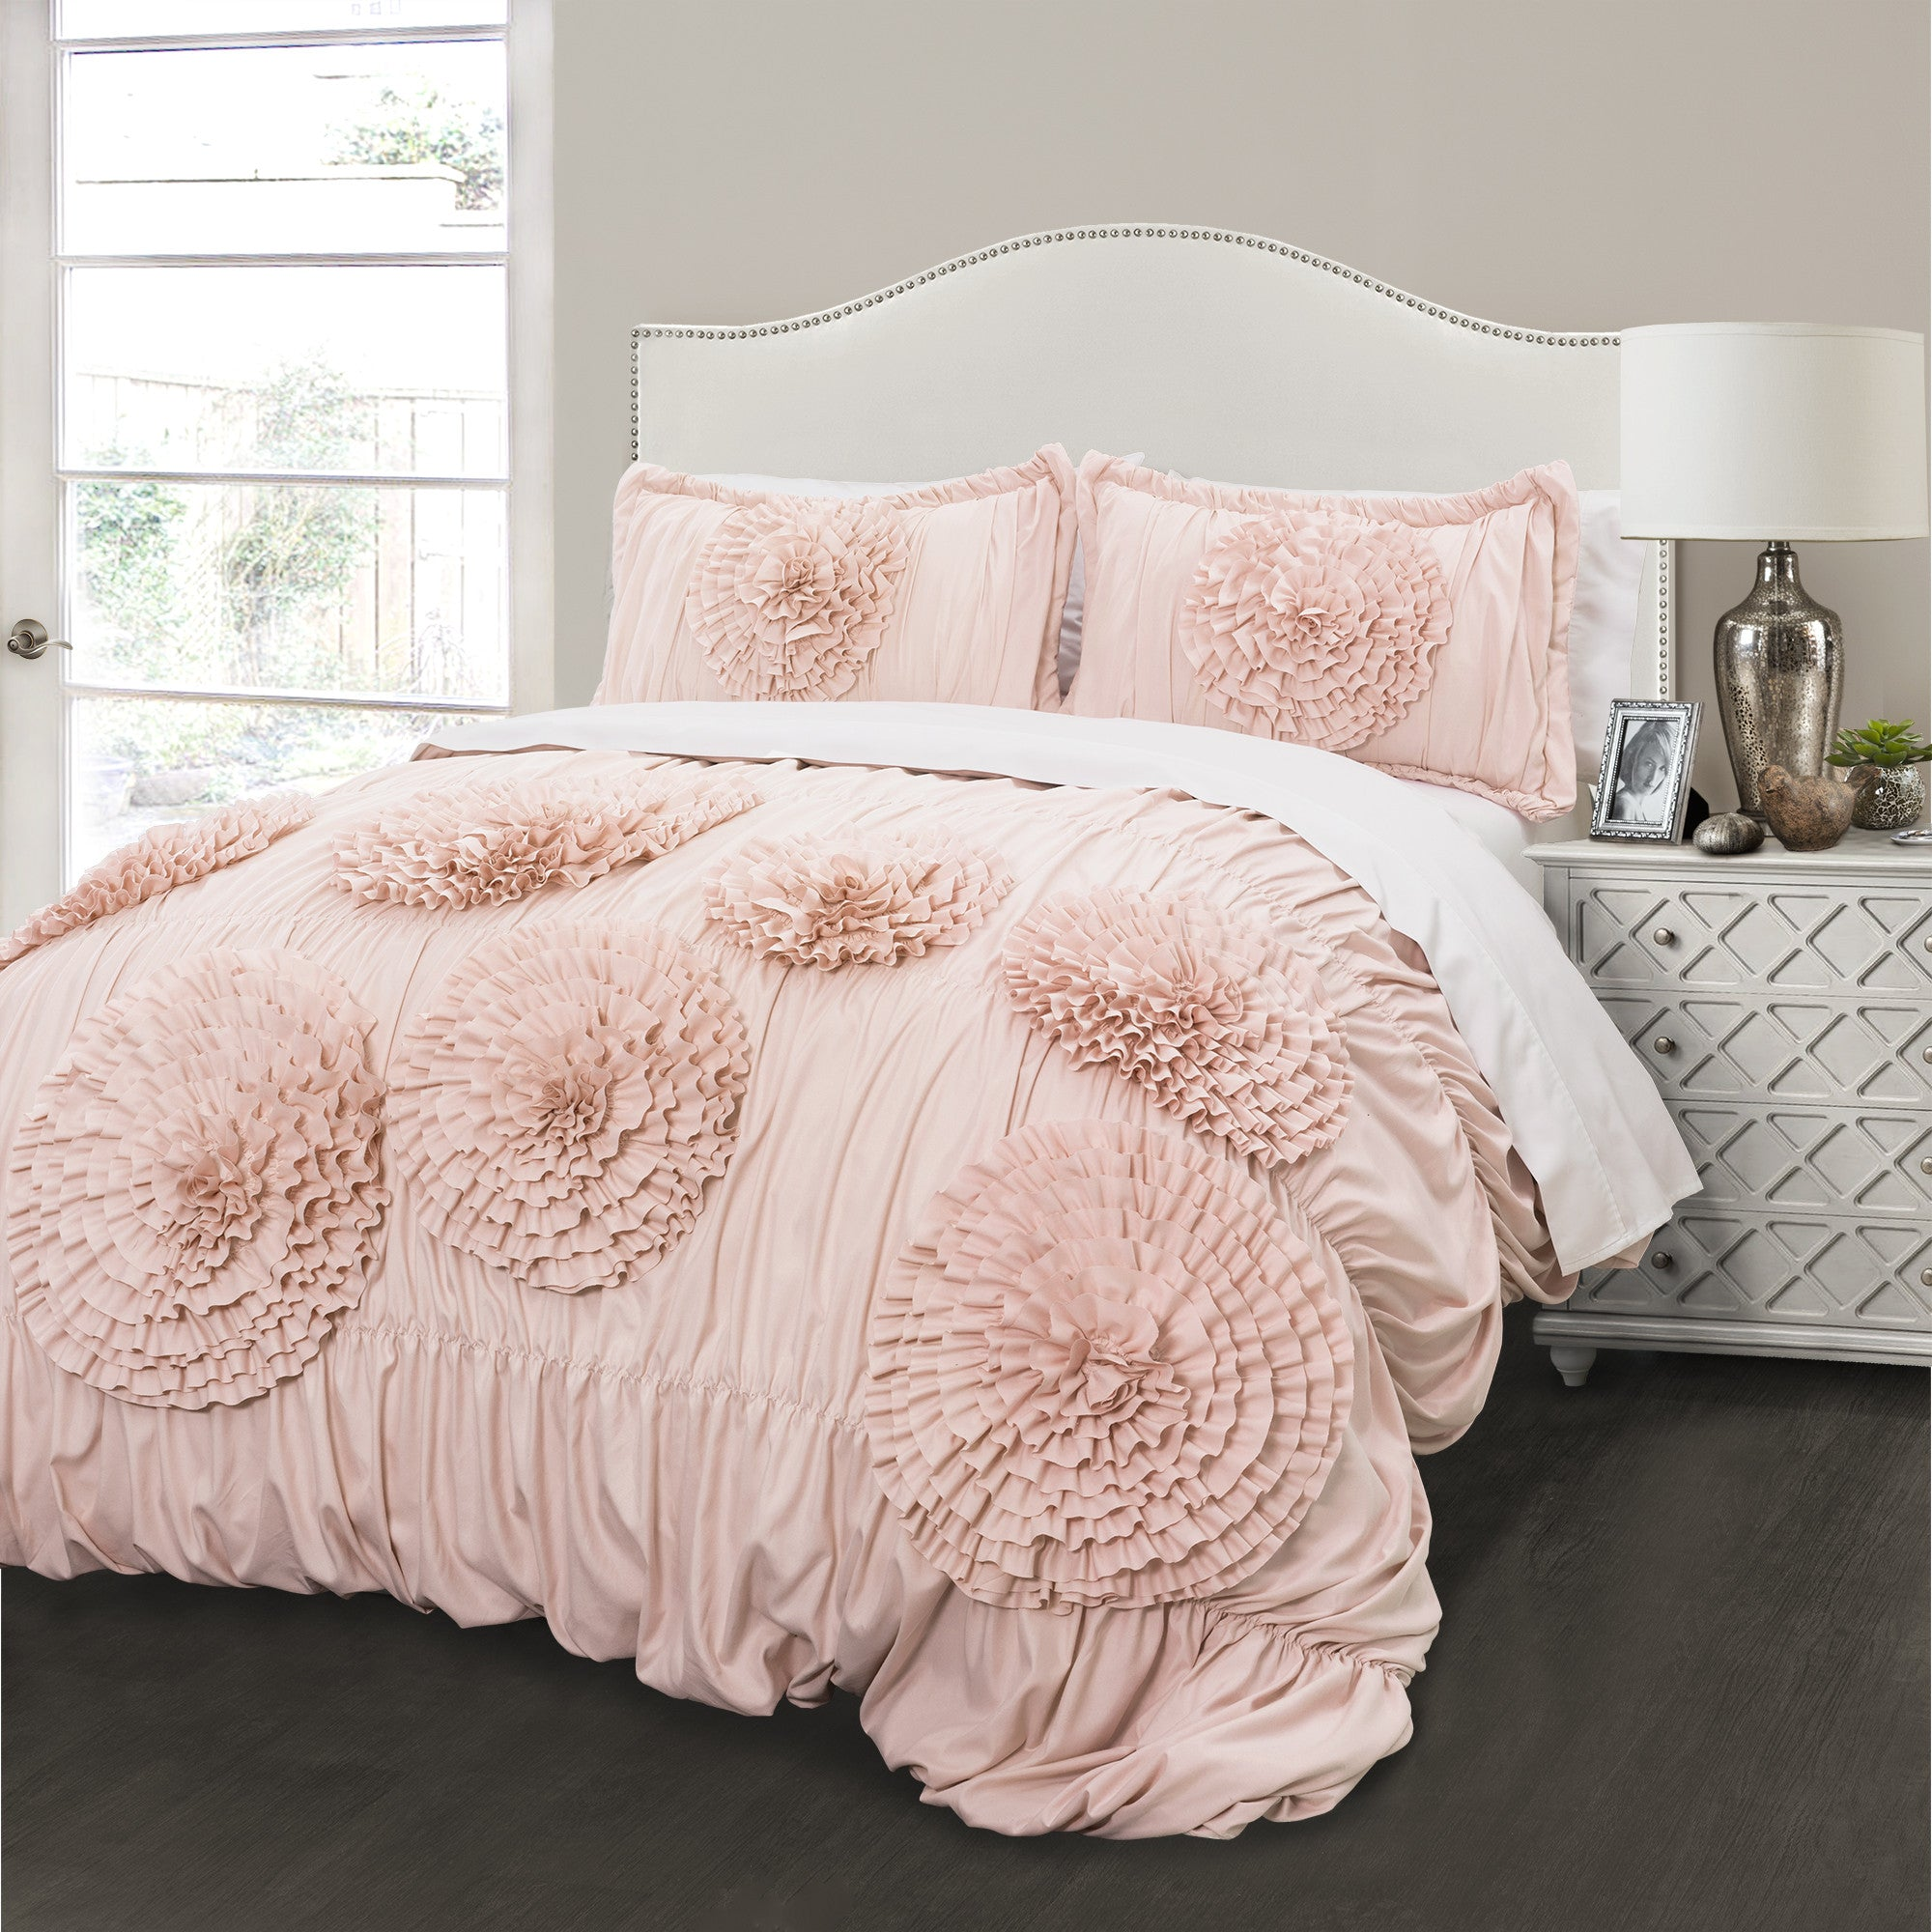 interiors bed piece set reviews arlo floral pinch willa comforter pdx linen floressa wayfair bath